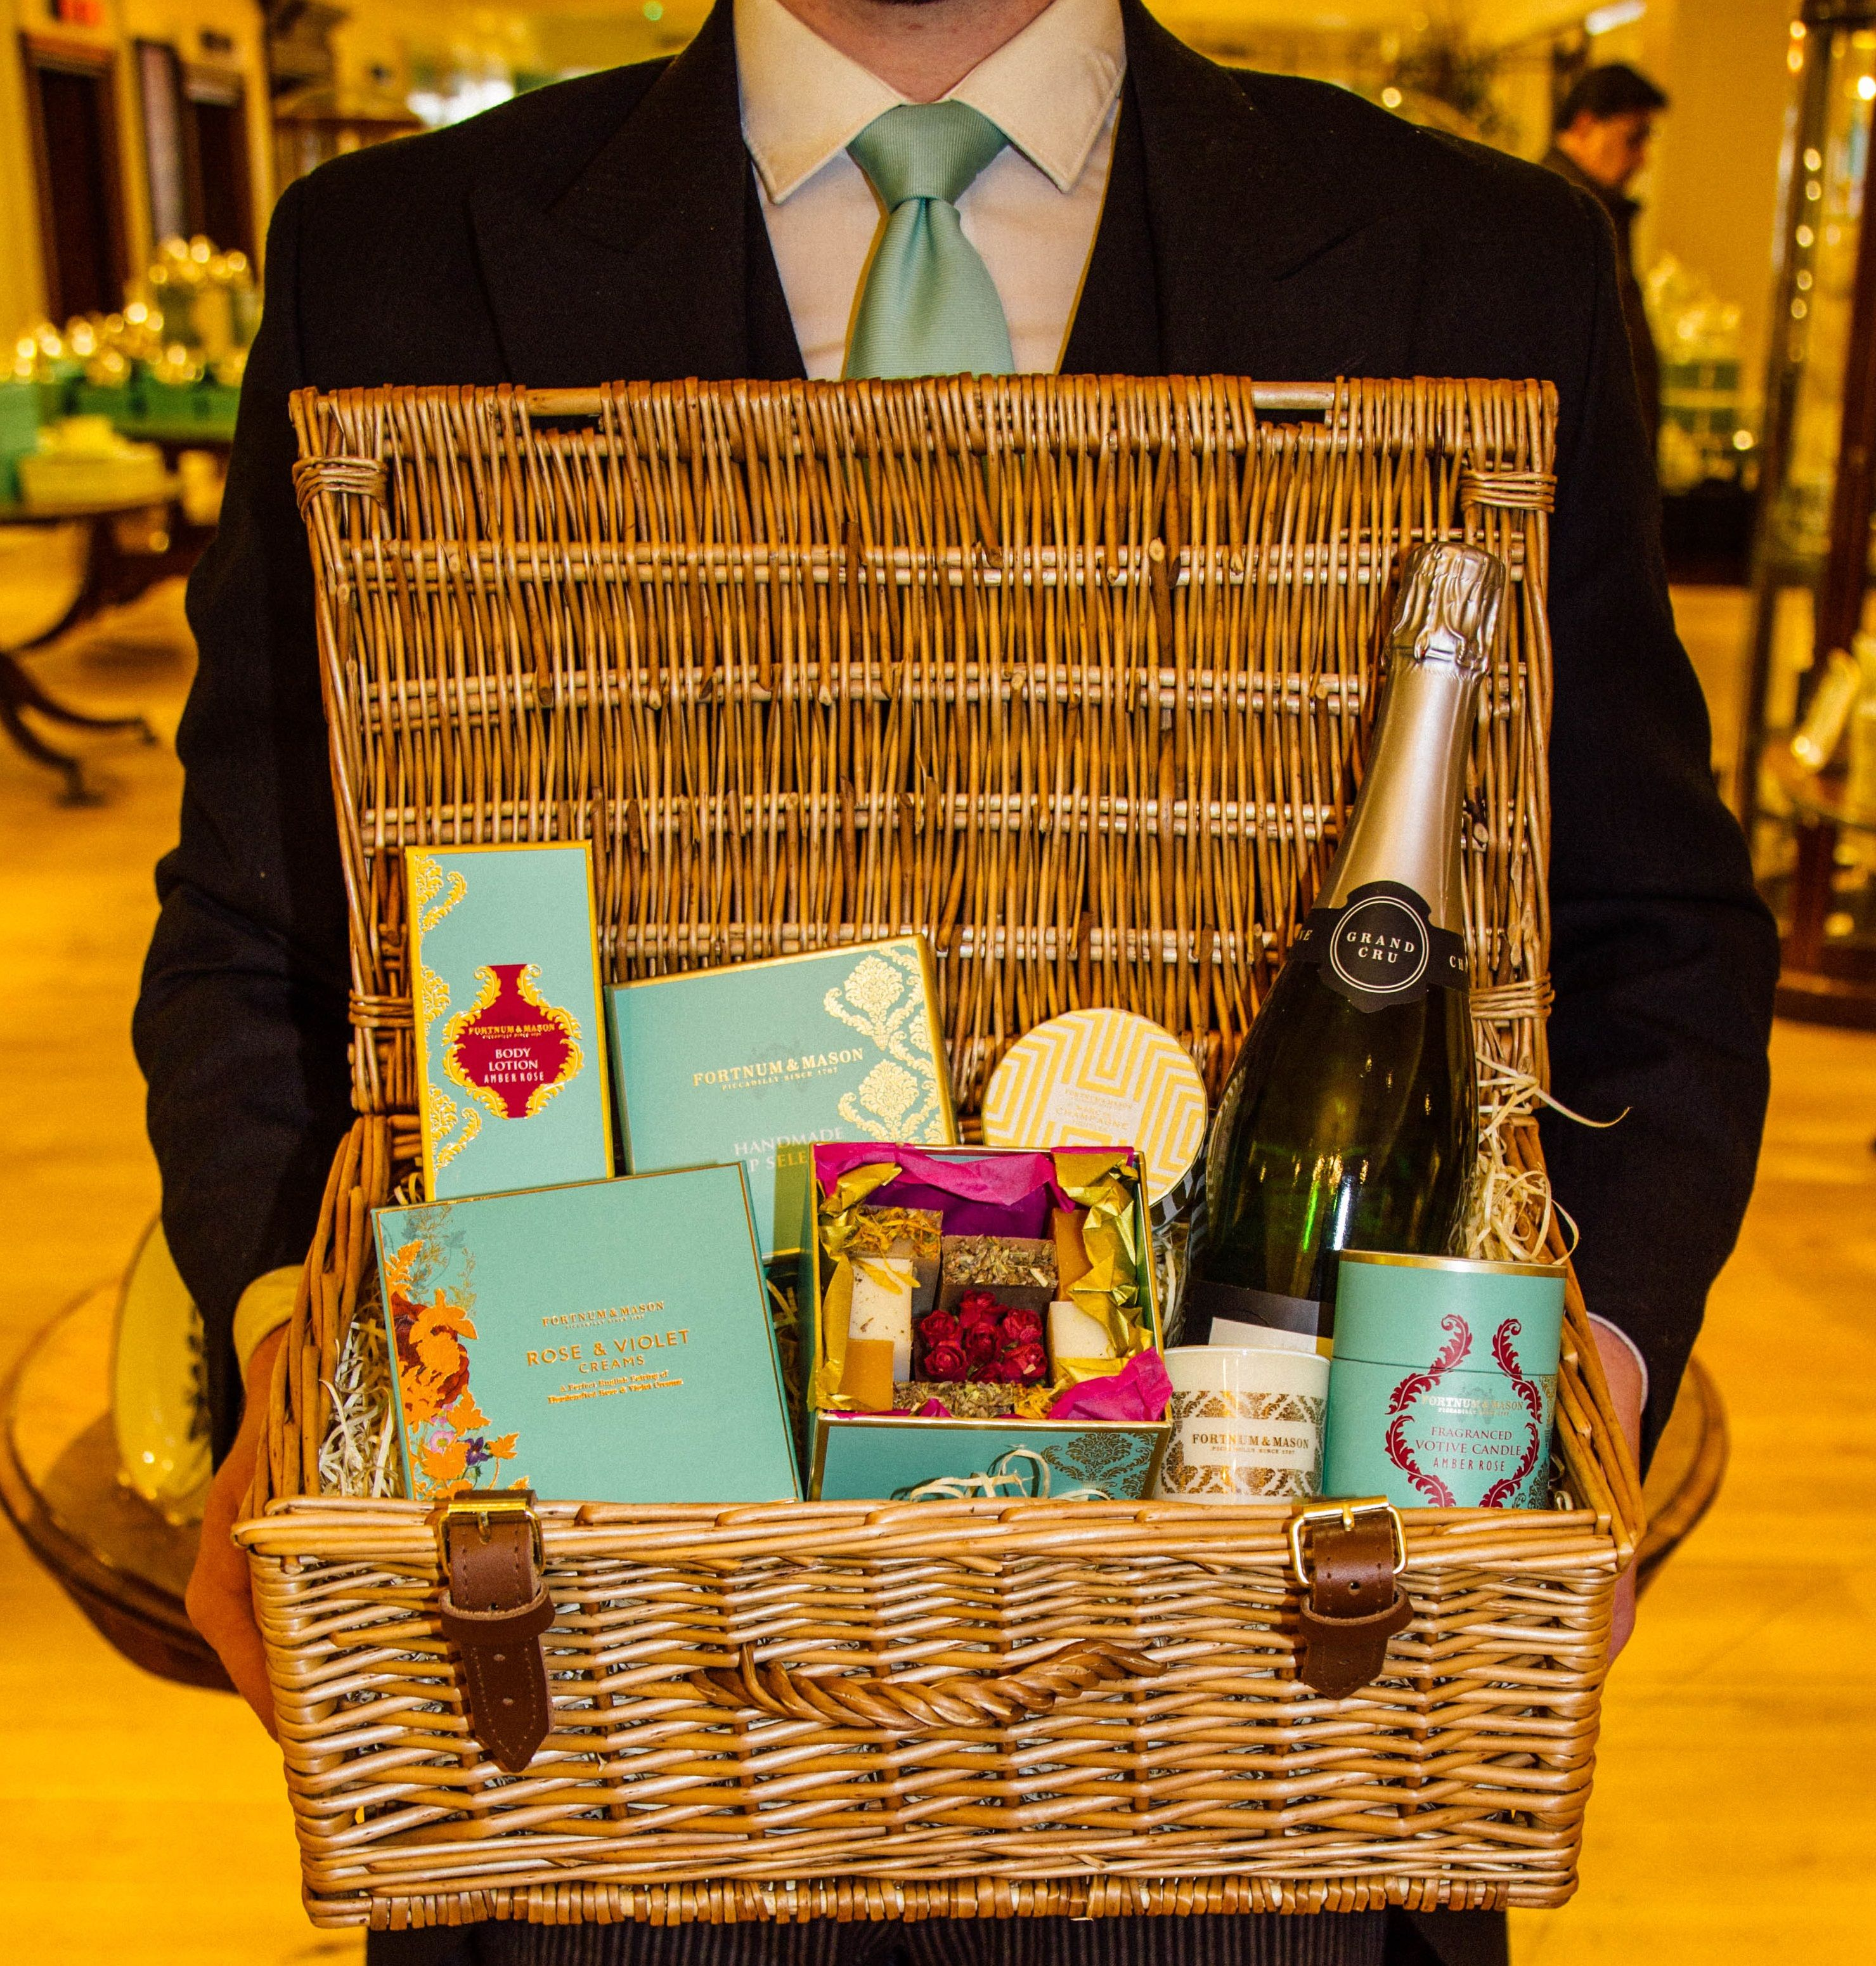 Pin by Fortnum & Mason on Hampers at Fortnum & Mason